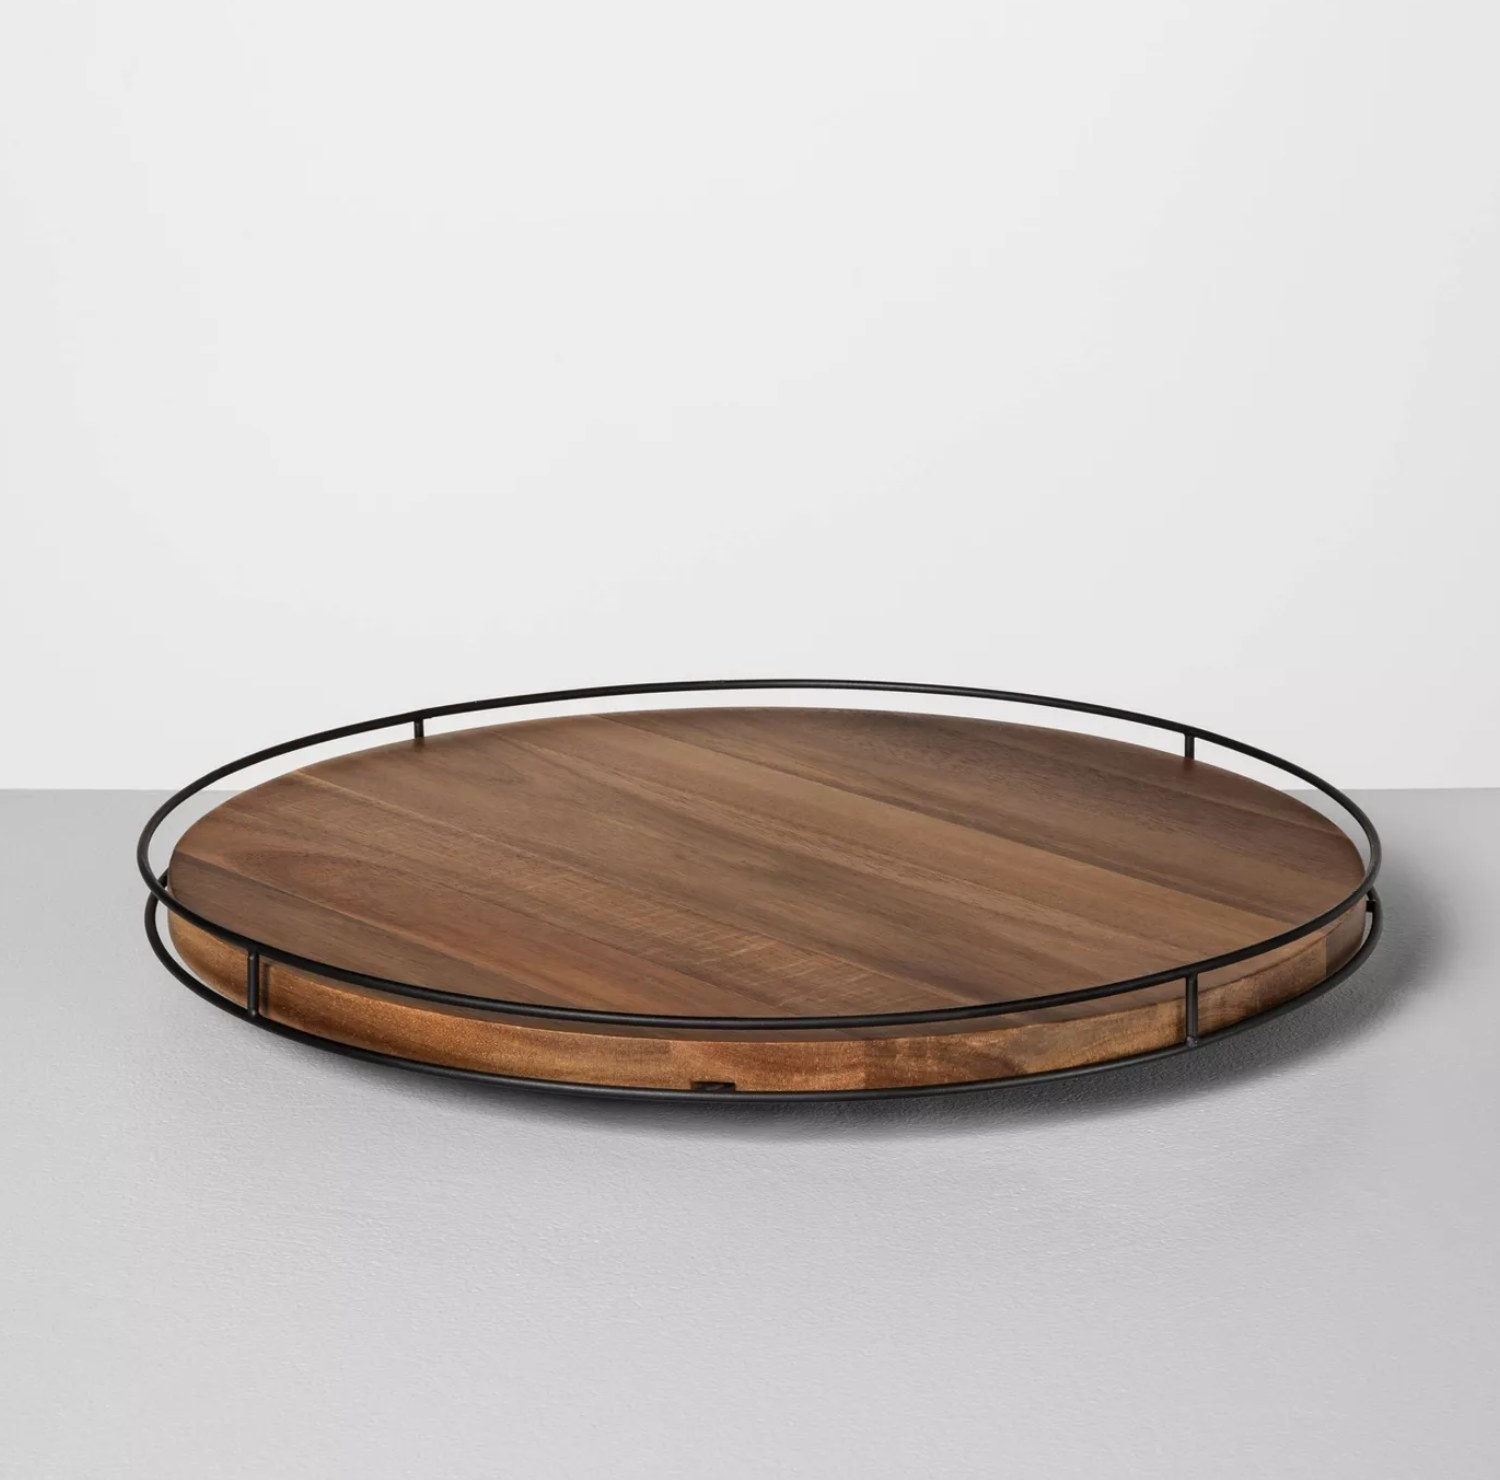 the wooden tray with black wiring around the edges